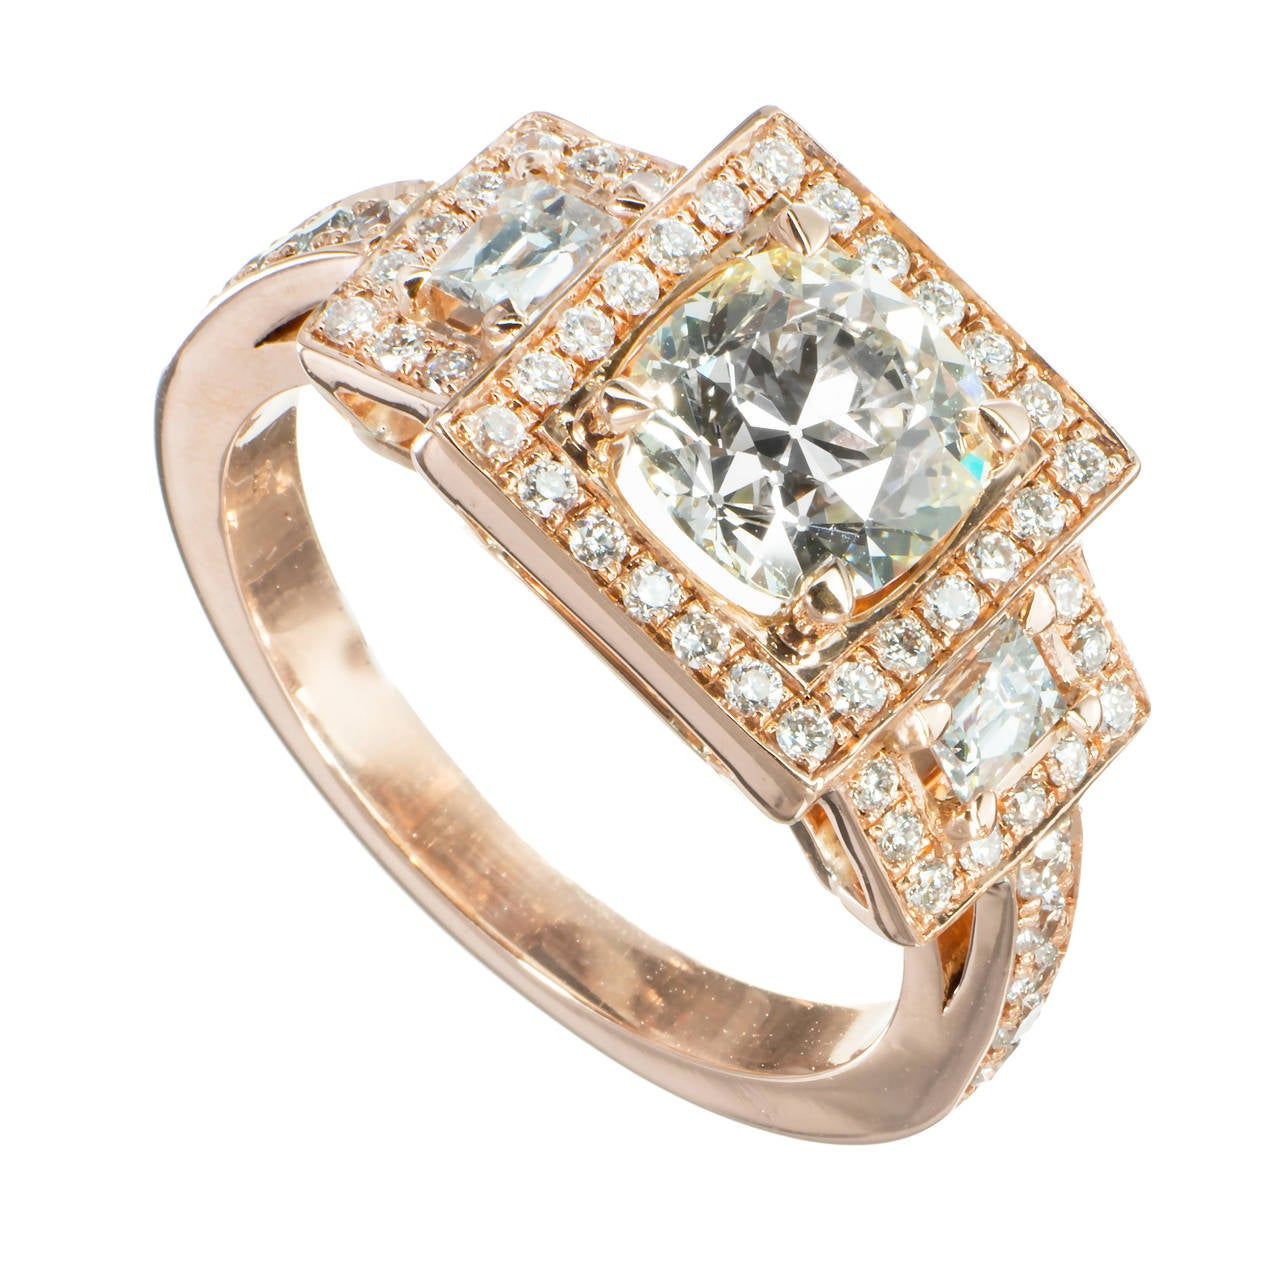 Peter Suchy 1.26 Carat Diamond Rose Gold Triple Halo Engagement Ring 1